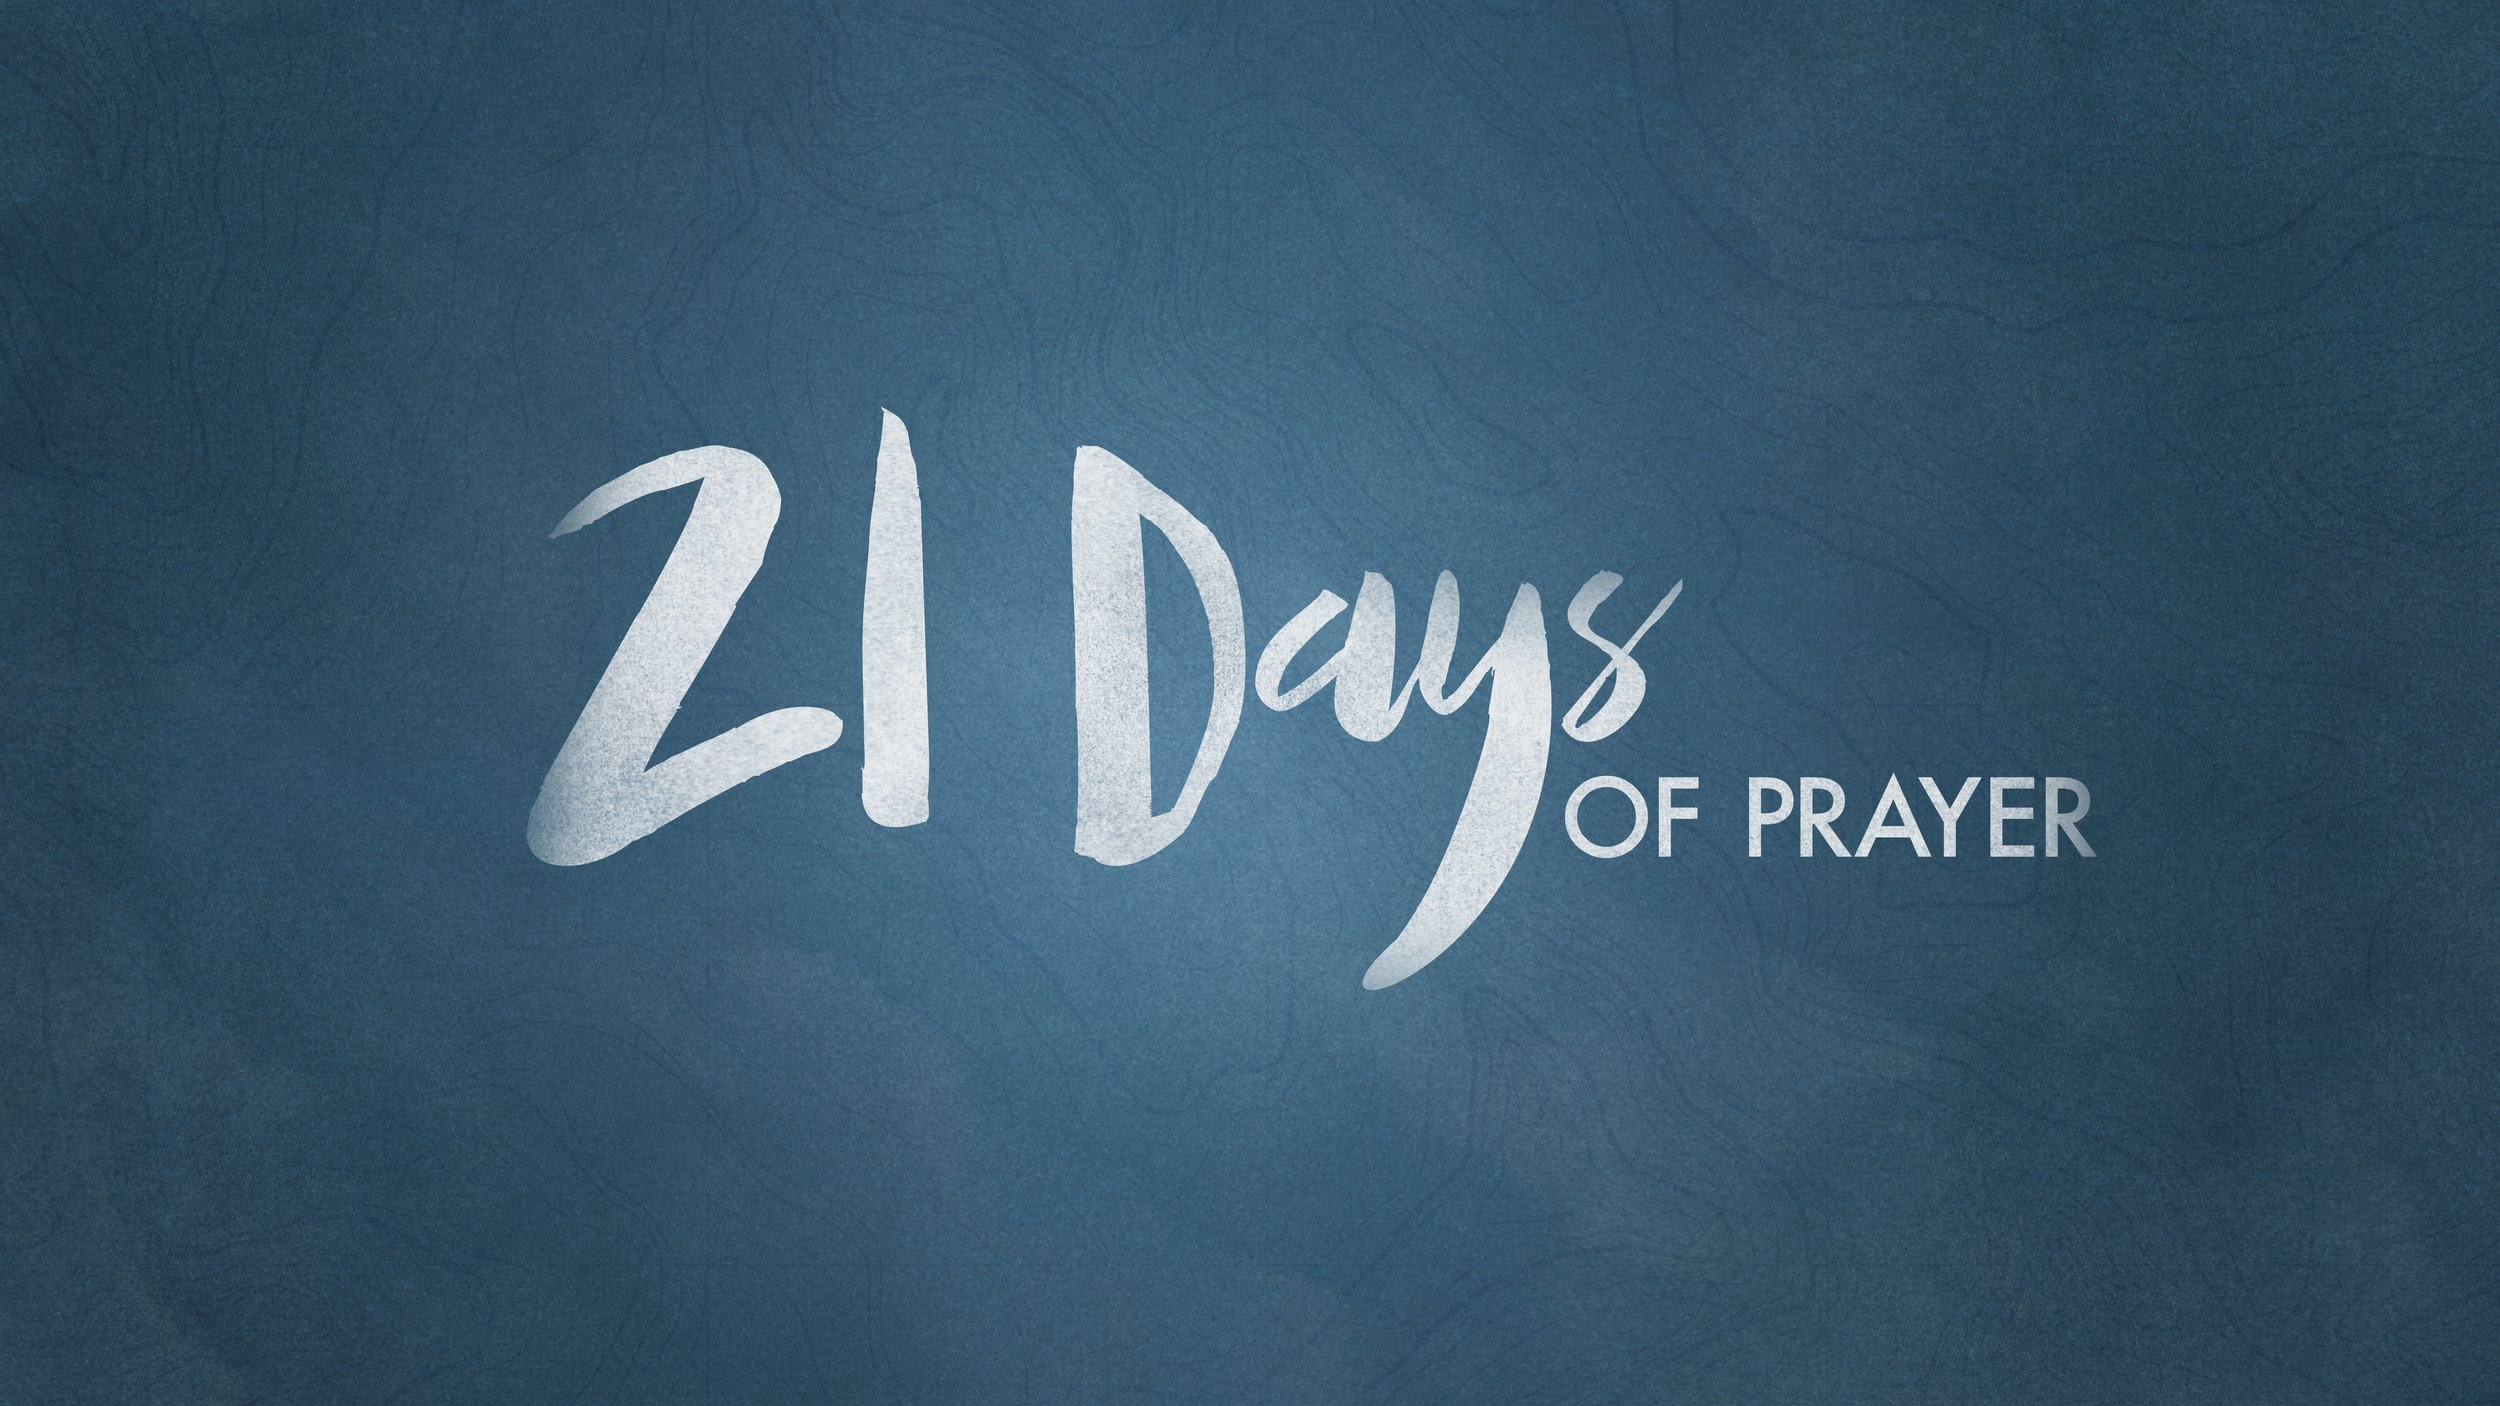 21 Days Of Prayer - Listen Only